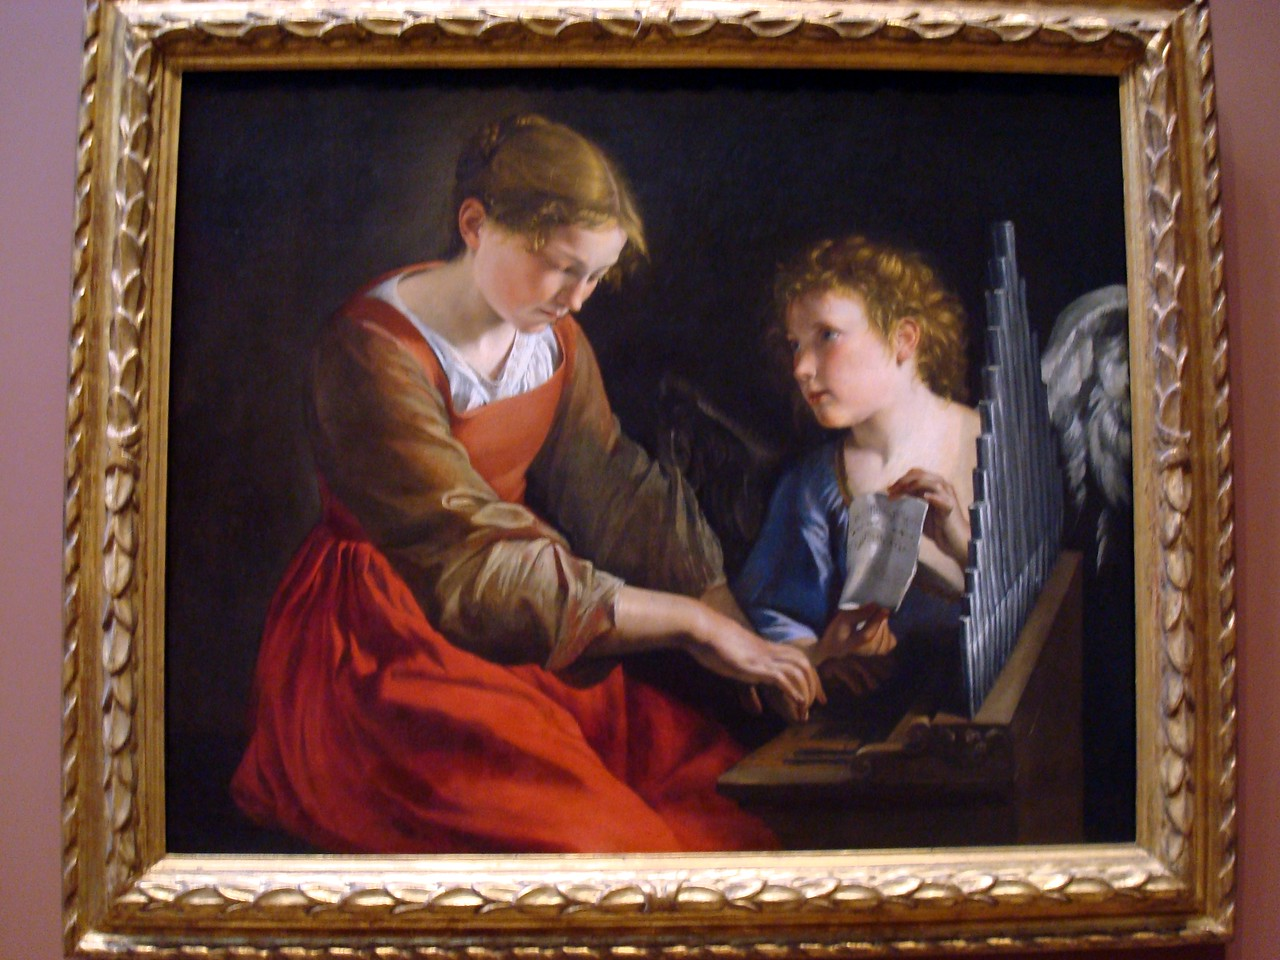 National Gallery of Art - Saint Cecilia and an Angel, c. 1617/1618 and c. 1621/1627, Orazio Gentileschi and Giovanni Lanfranco